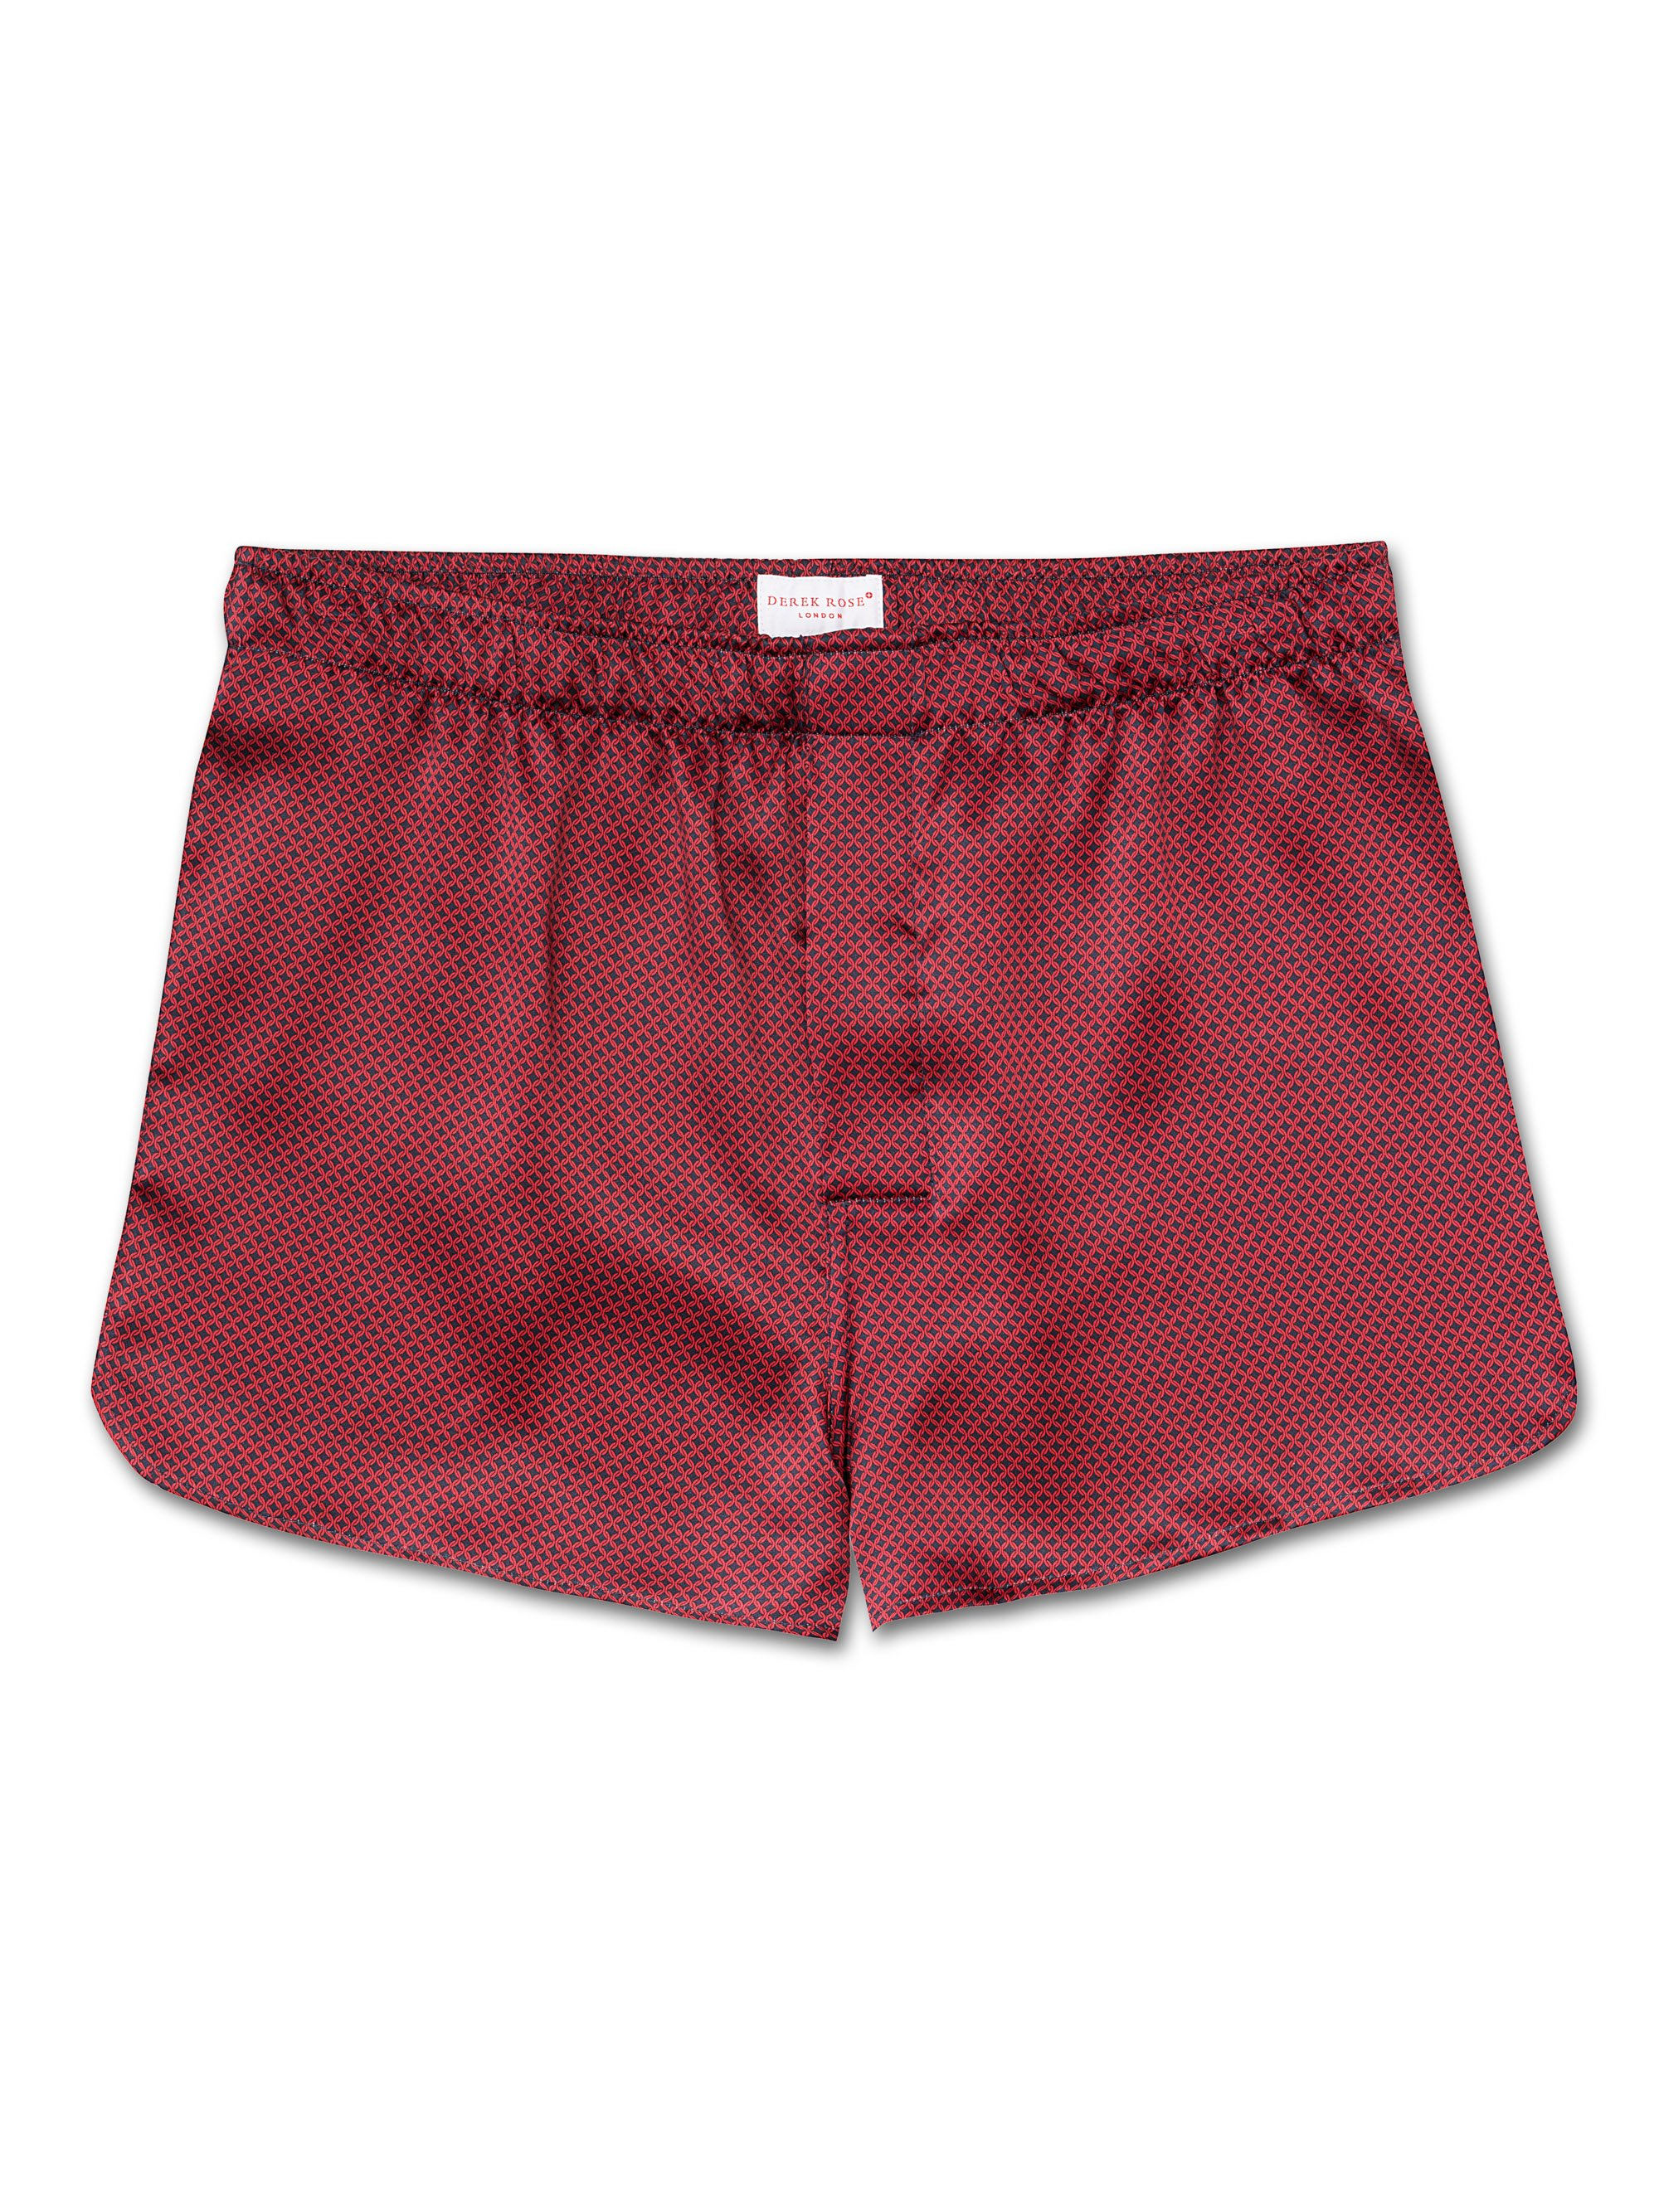 Men's Modern Fit Boxer Shorts Brindisi 4 Pure Silk Red